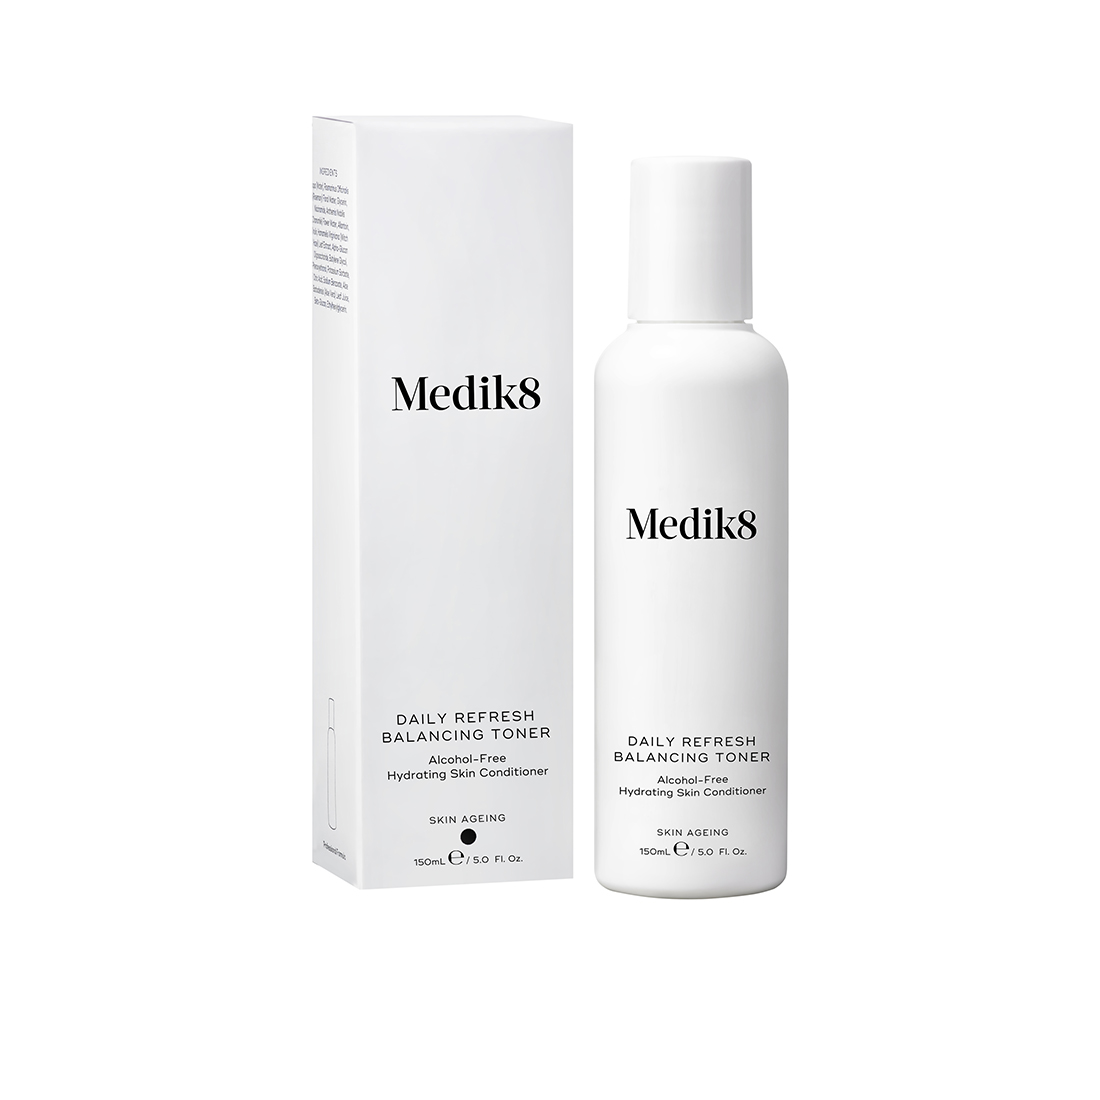 Medik8 Daily Refresh Balancing Toner 150 ml